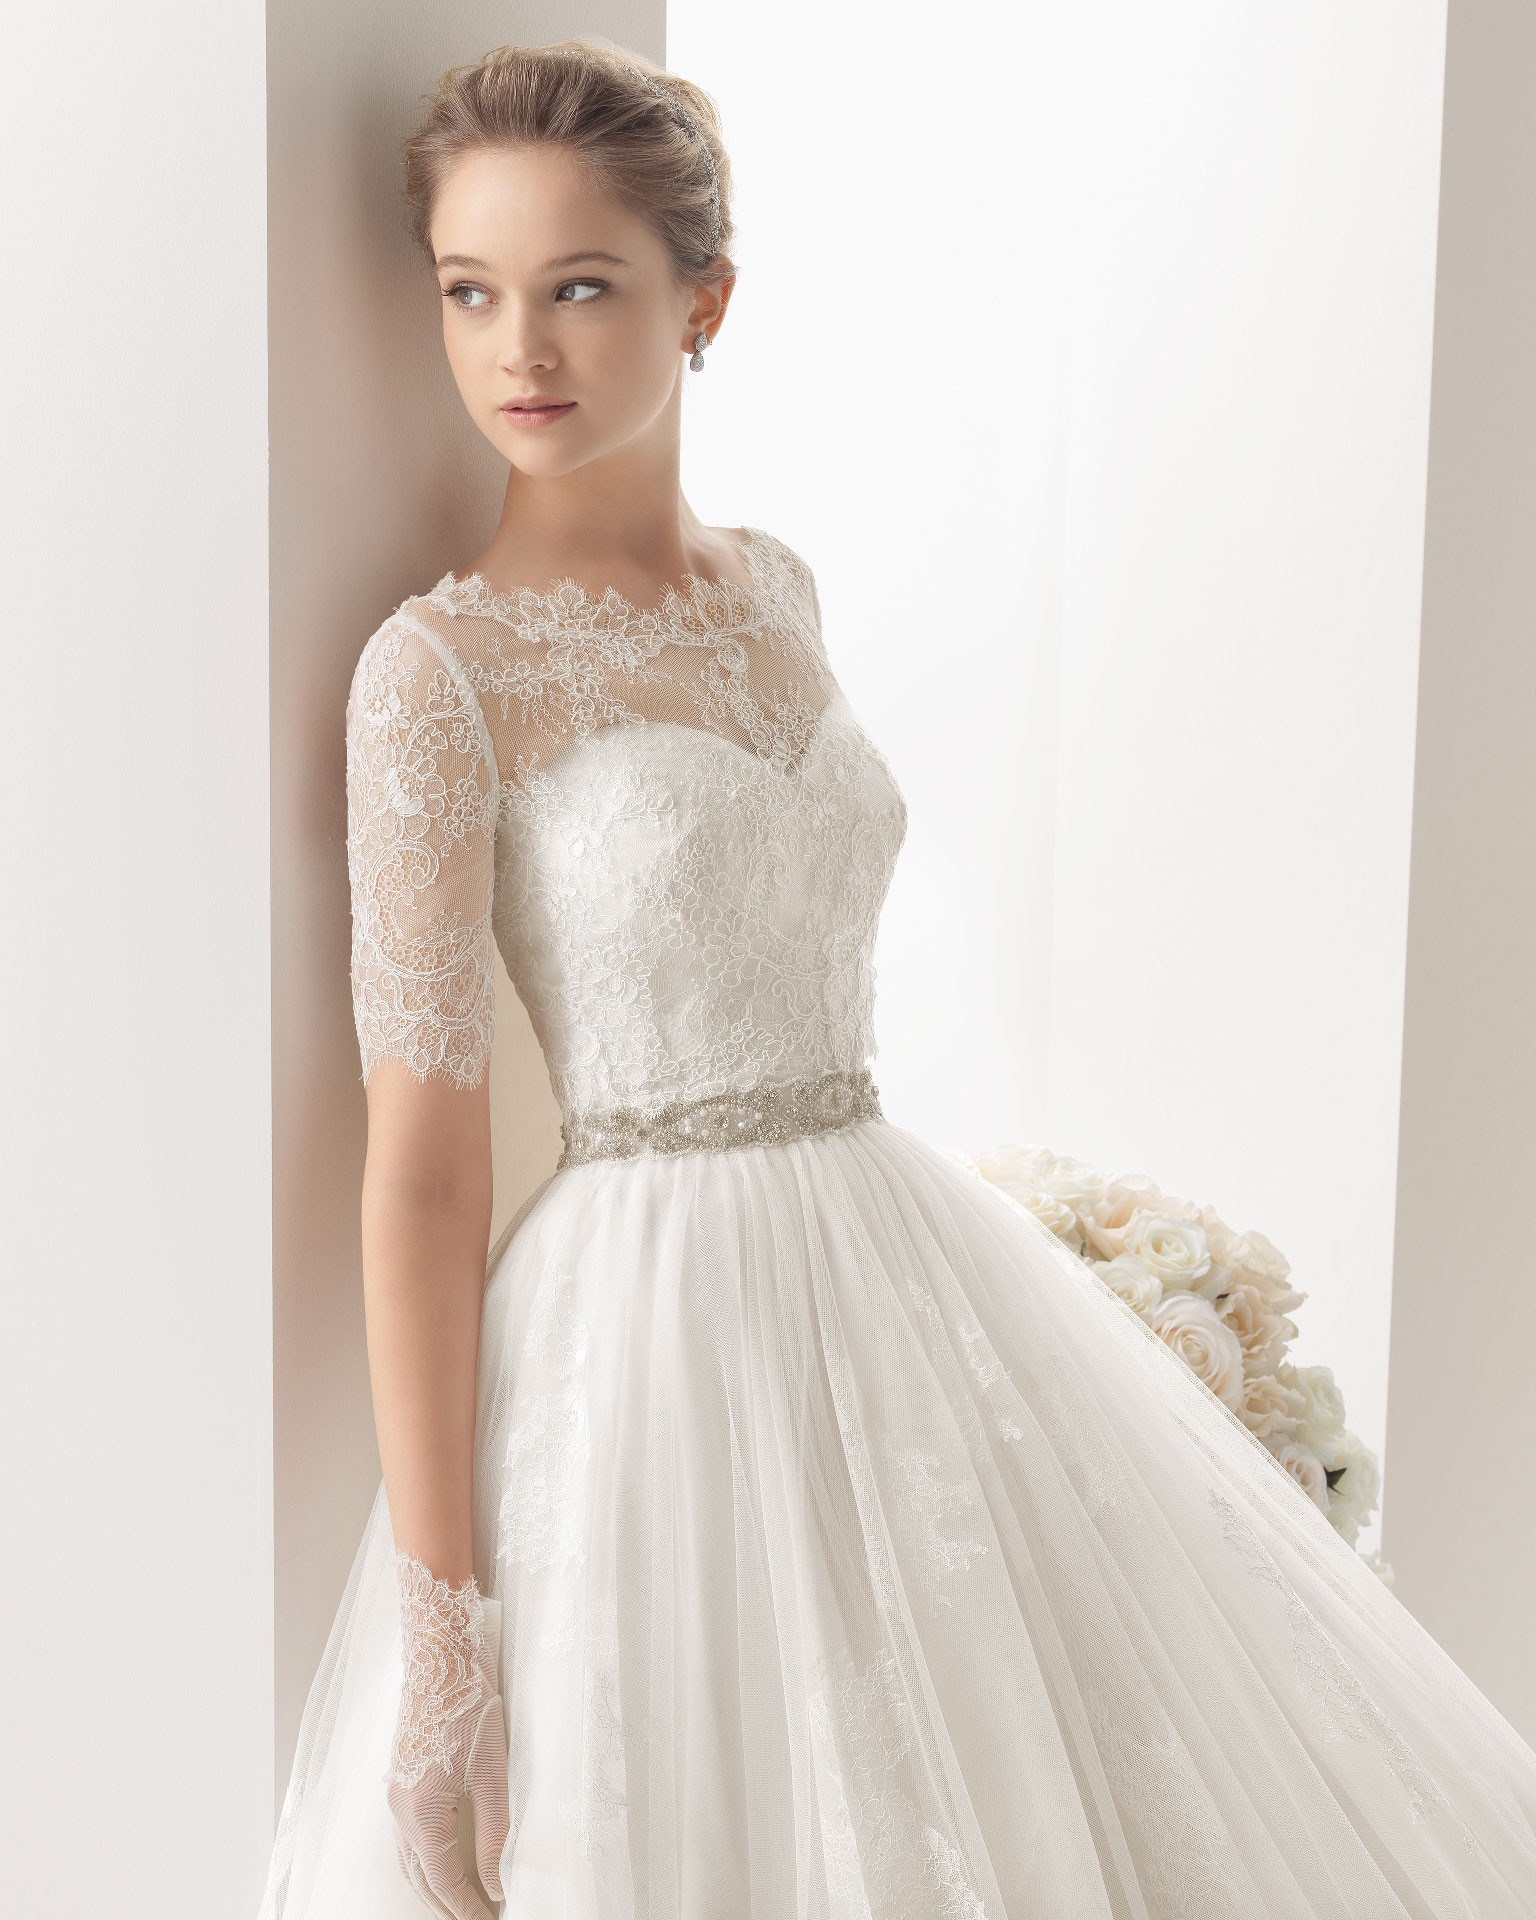 Fabulous wedding dresses collection for brides for Dress up wedding dresses